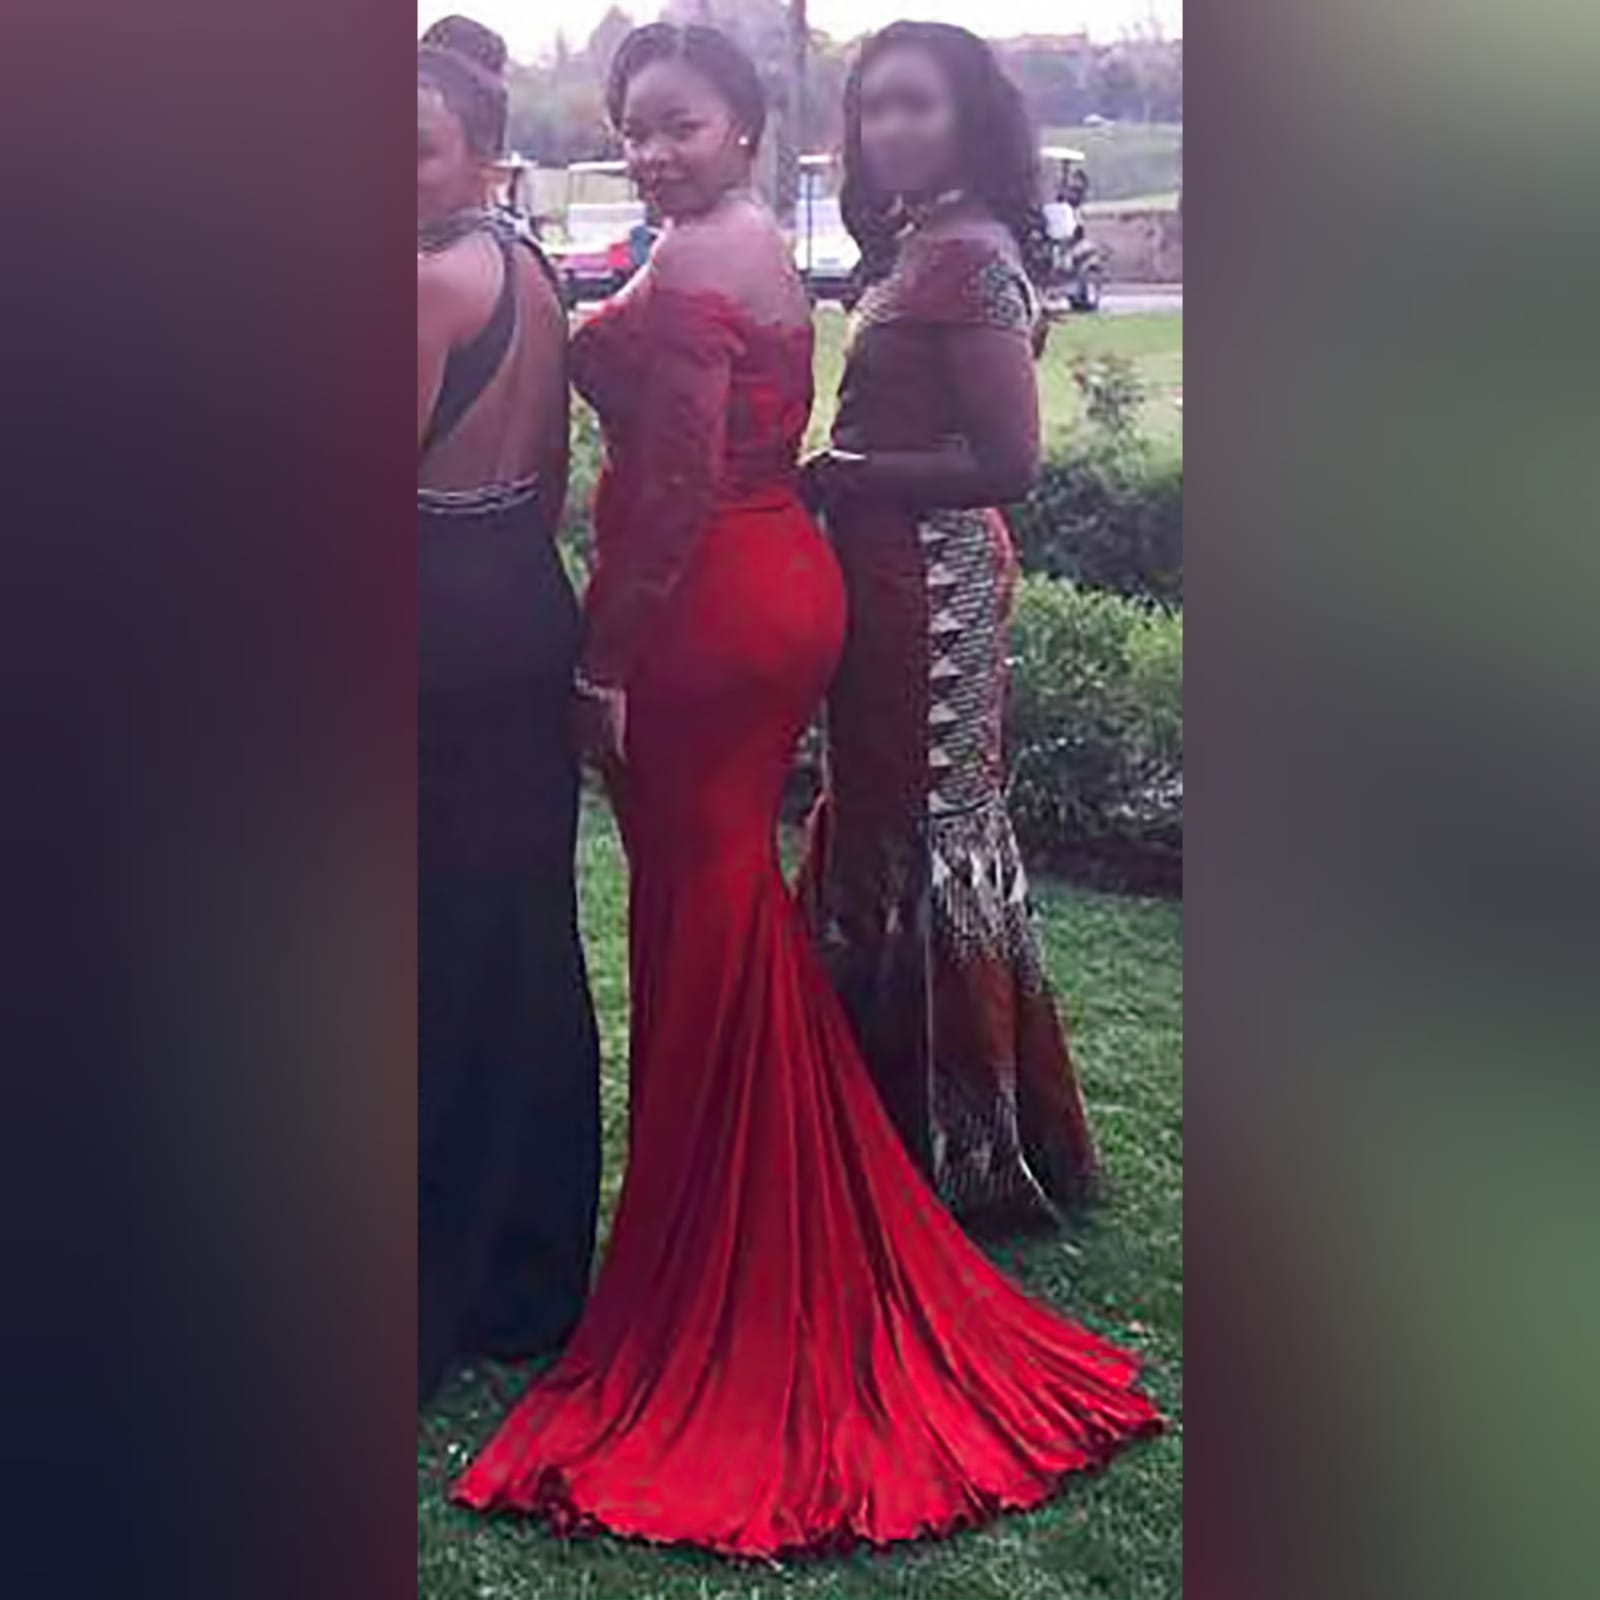 Off shoulder deep red soft mermaid prom dress 1 off shoulder deep red soft mermaid prom dress with an illusion long lace sleeves. Bodice detailed with lace and beads. With a train